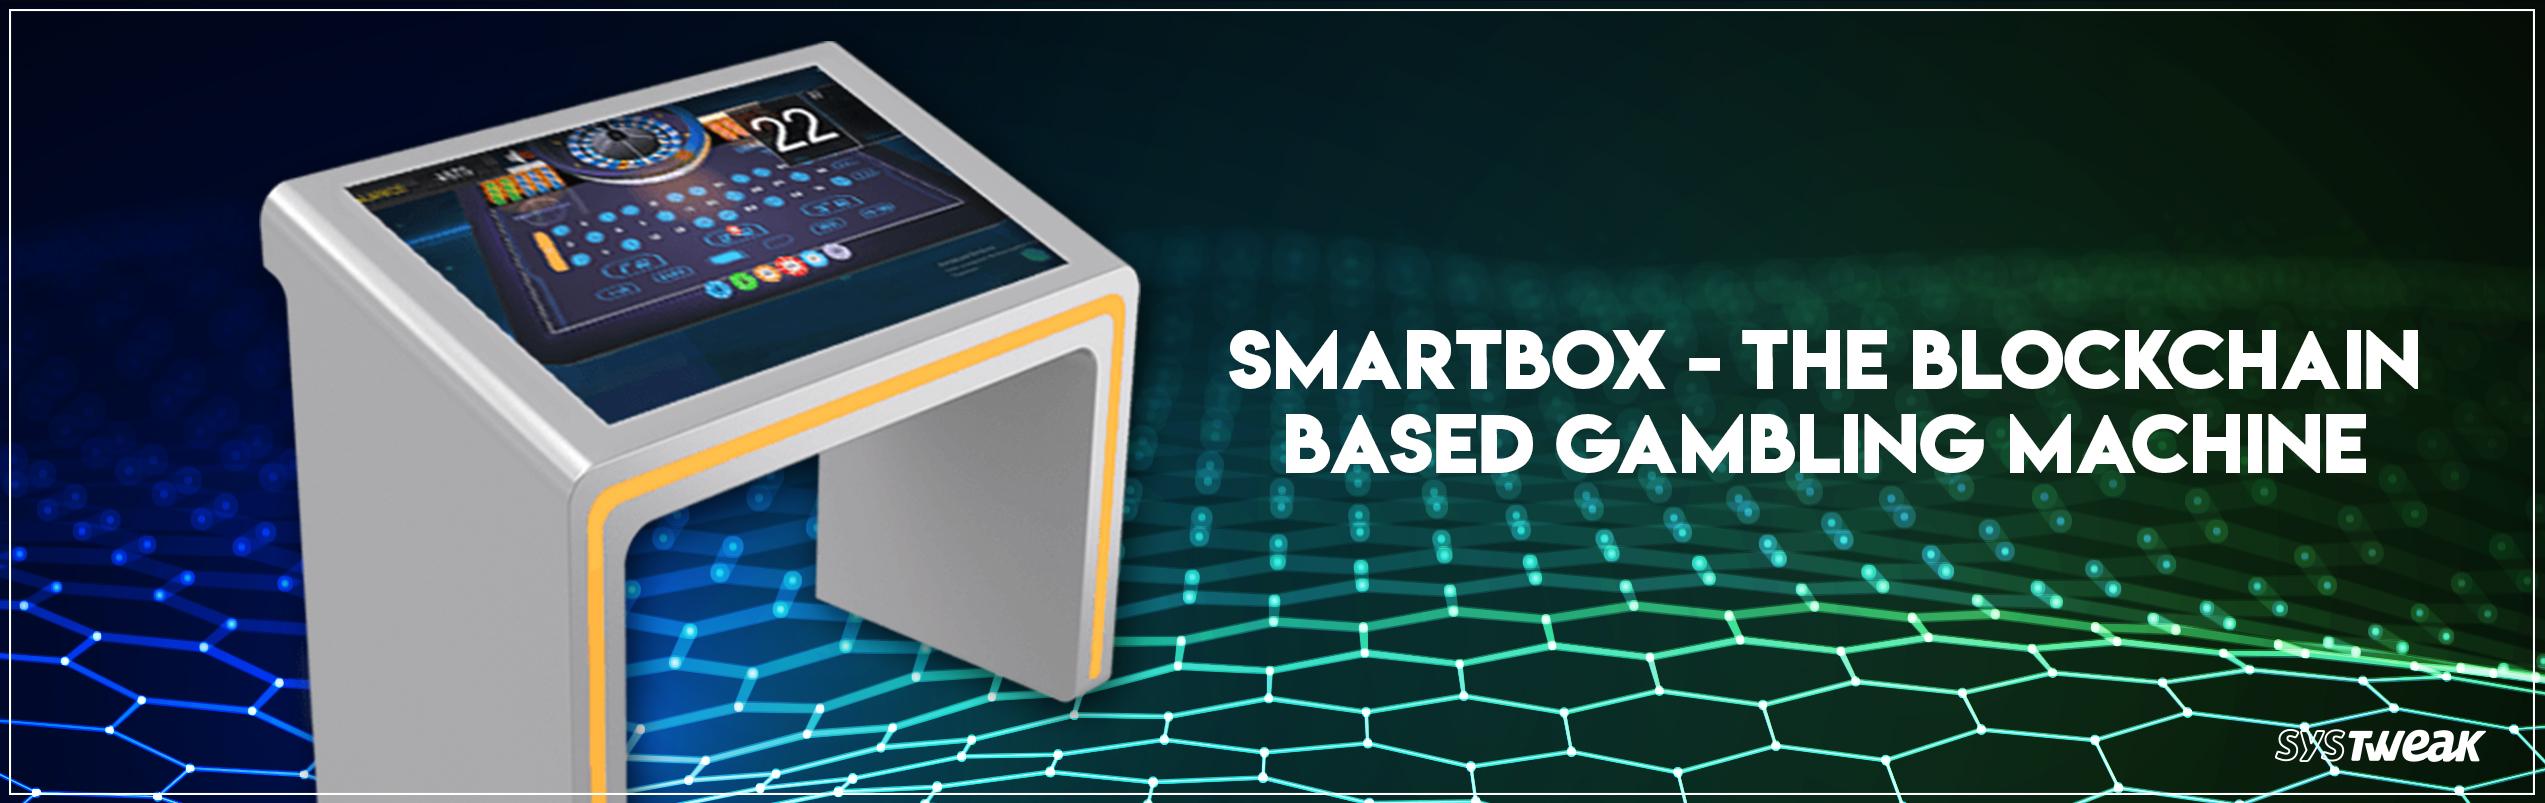 All You Need To Know About Smartbox: The Blockchain Gambling Machine